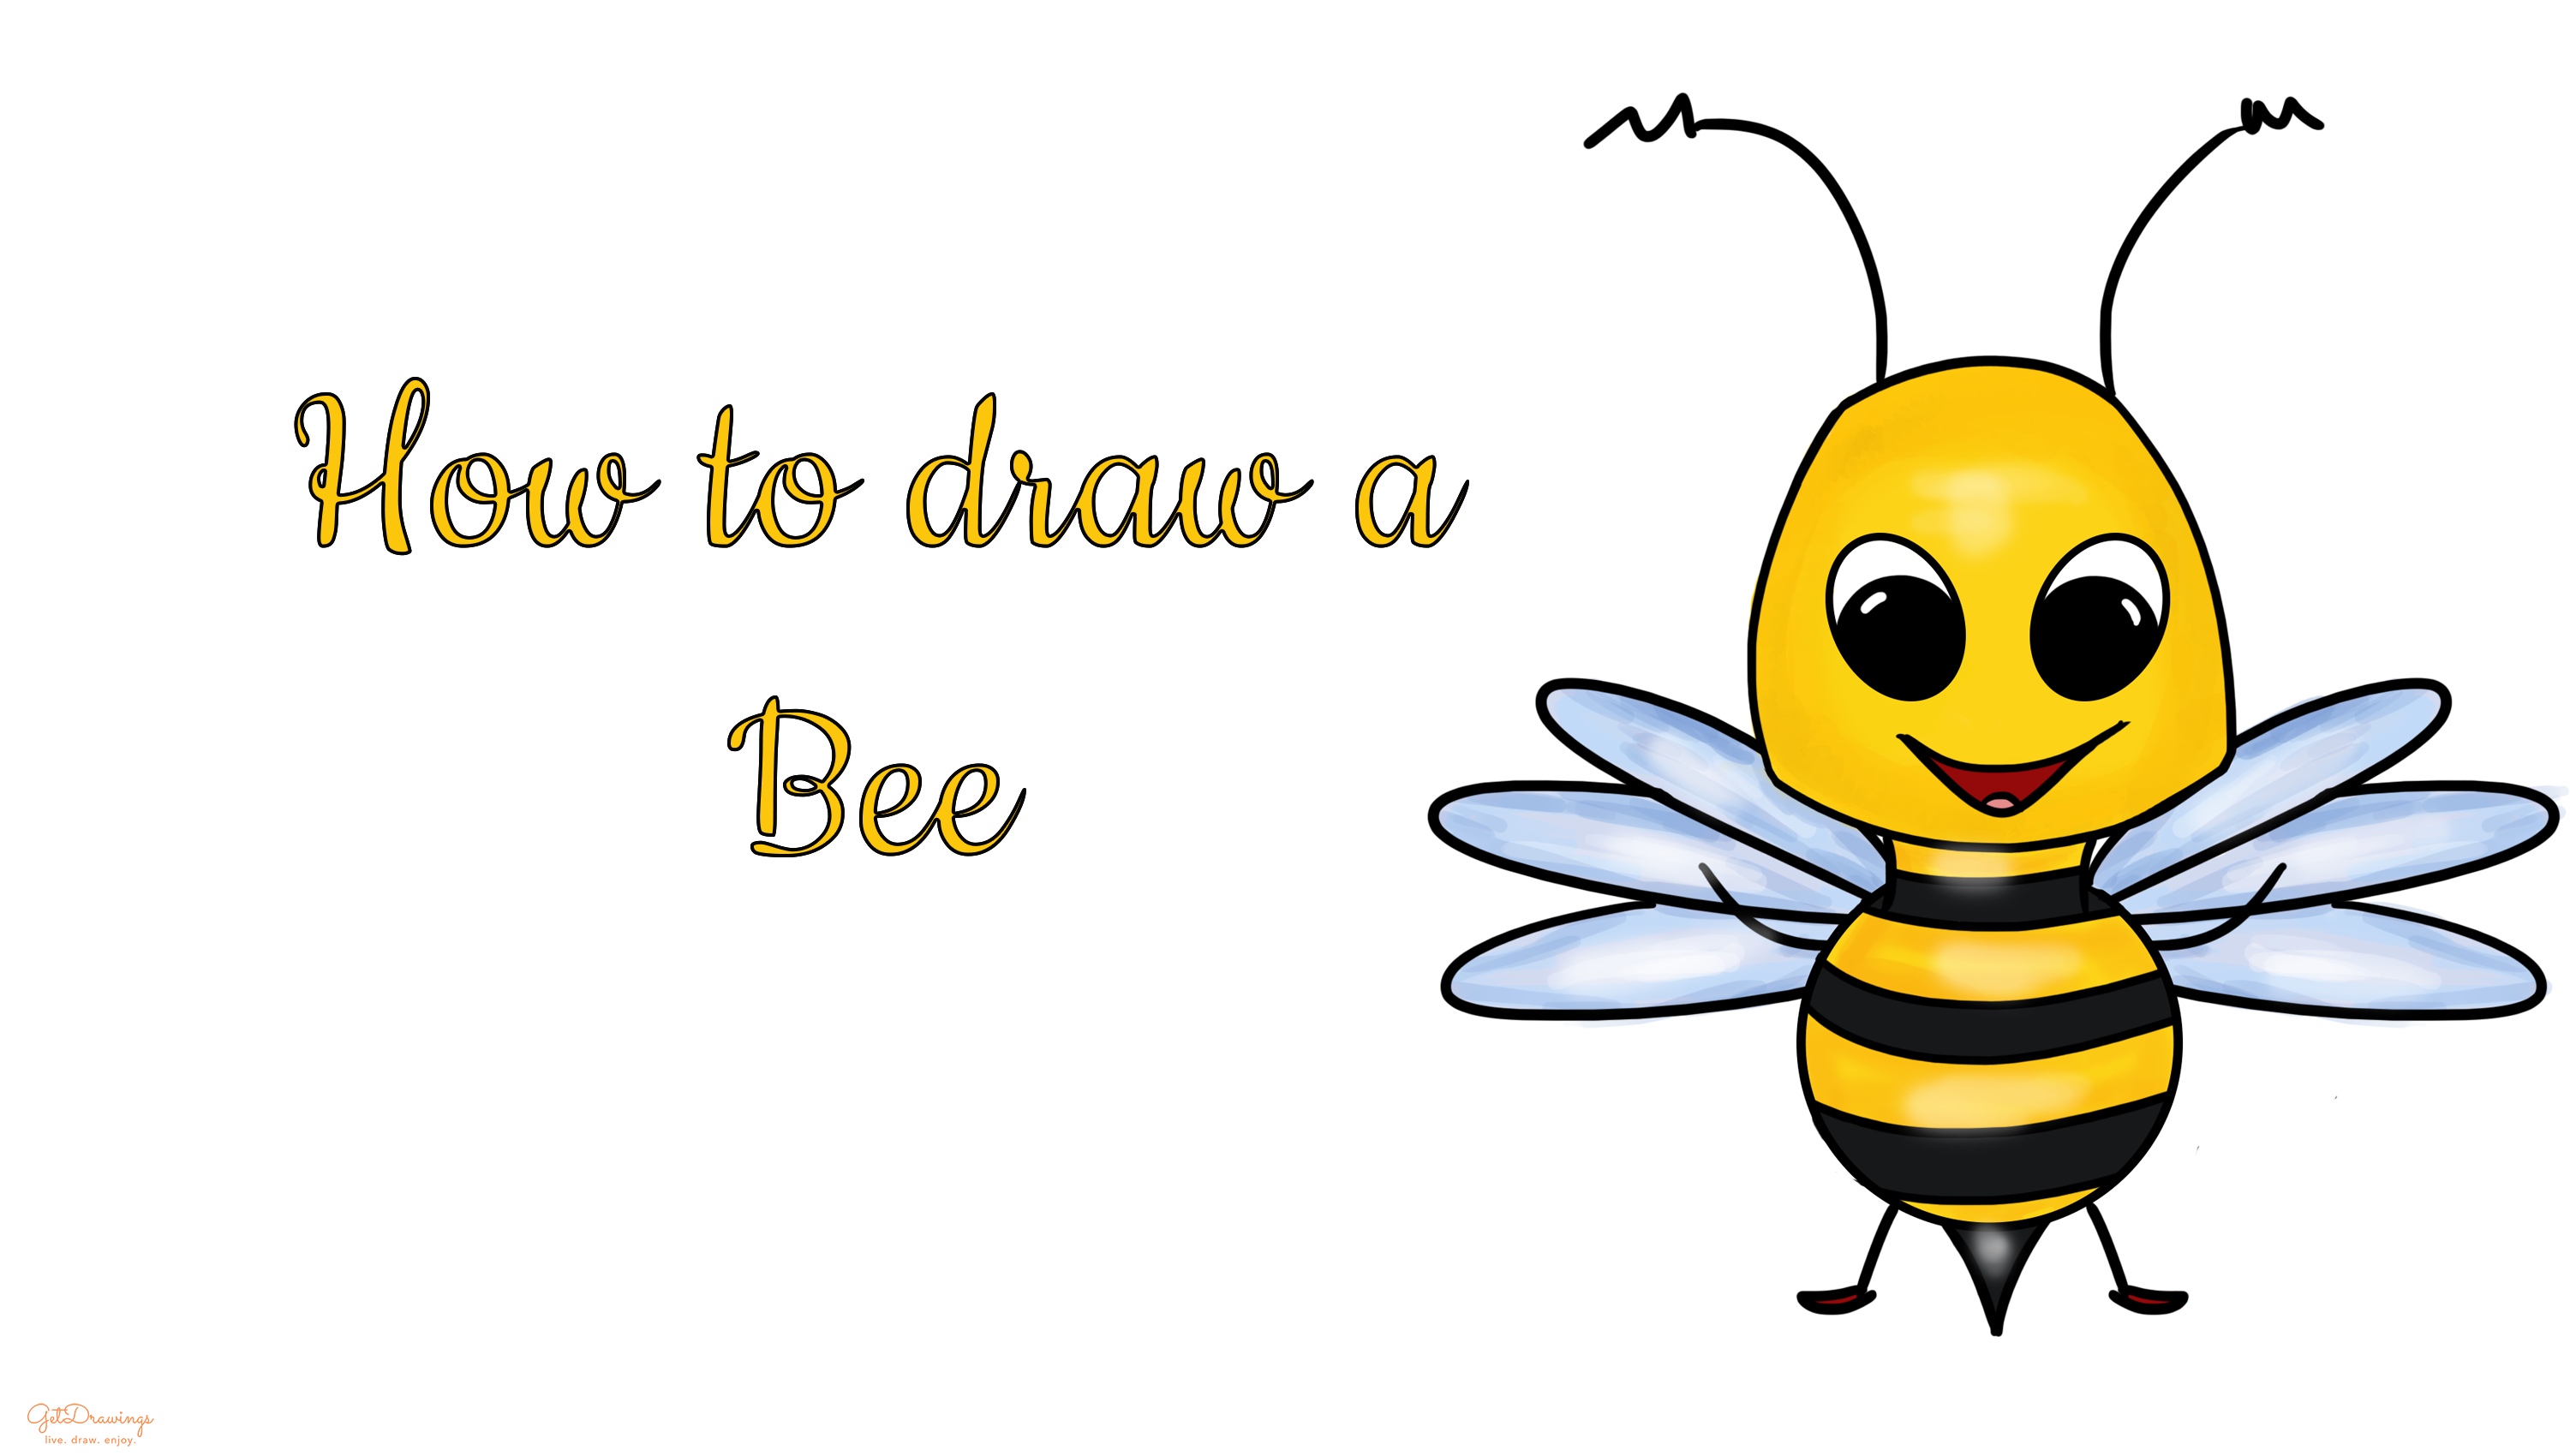 How to draw a Bee?